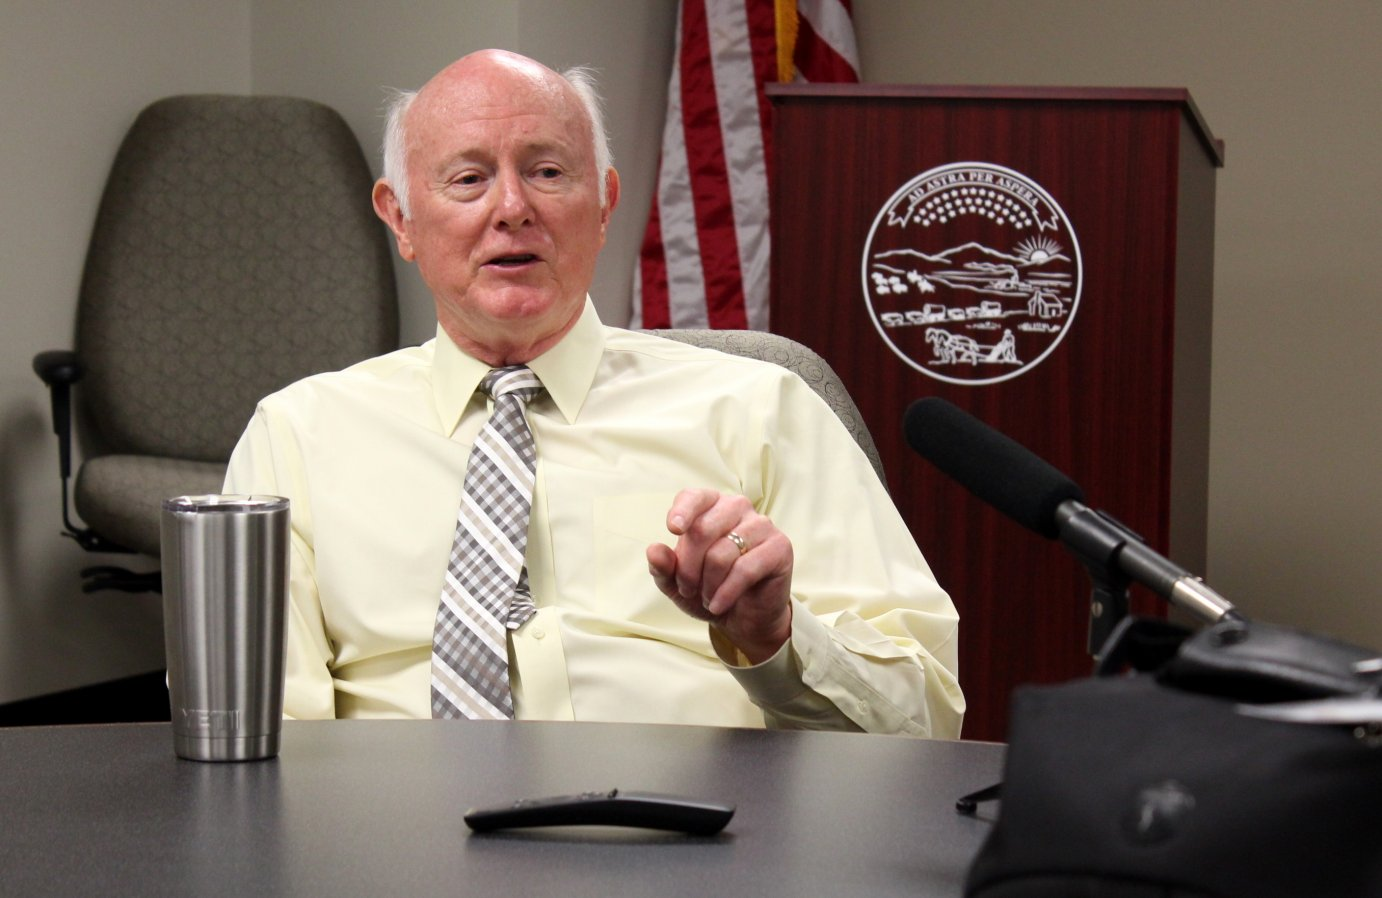 Kansas Department of Revenue Secretary Sam Williams speaking to reporters Friday. (Photo by Stephen Koranda)